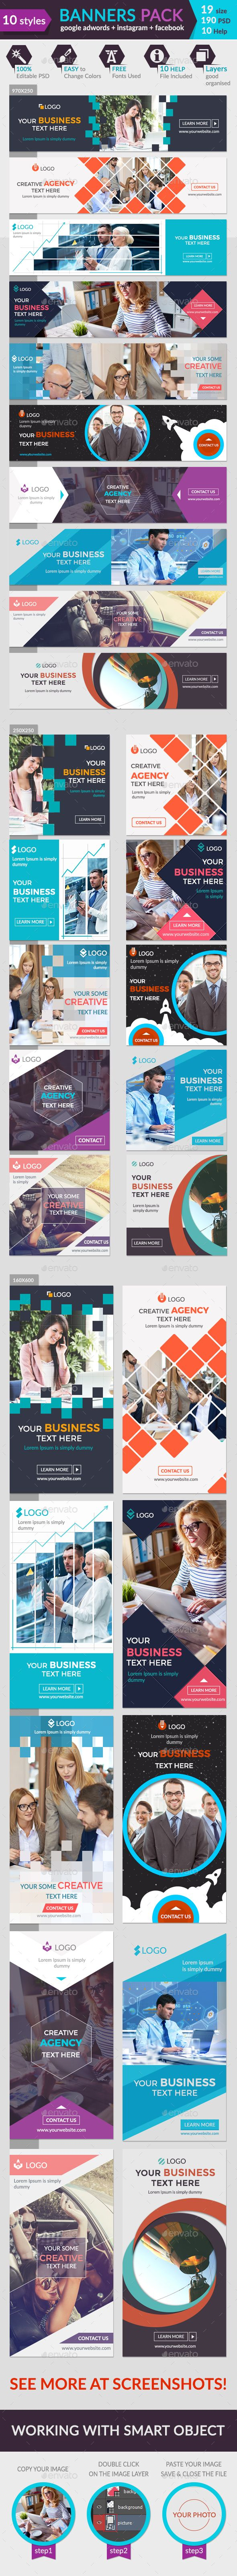 Banners Pack Design Template - Banners & Ads Web Elements Template PSD. Download here: https://graphicriver.net/item/banners-pack/17734579?s_rank=17&ref=yinkira